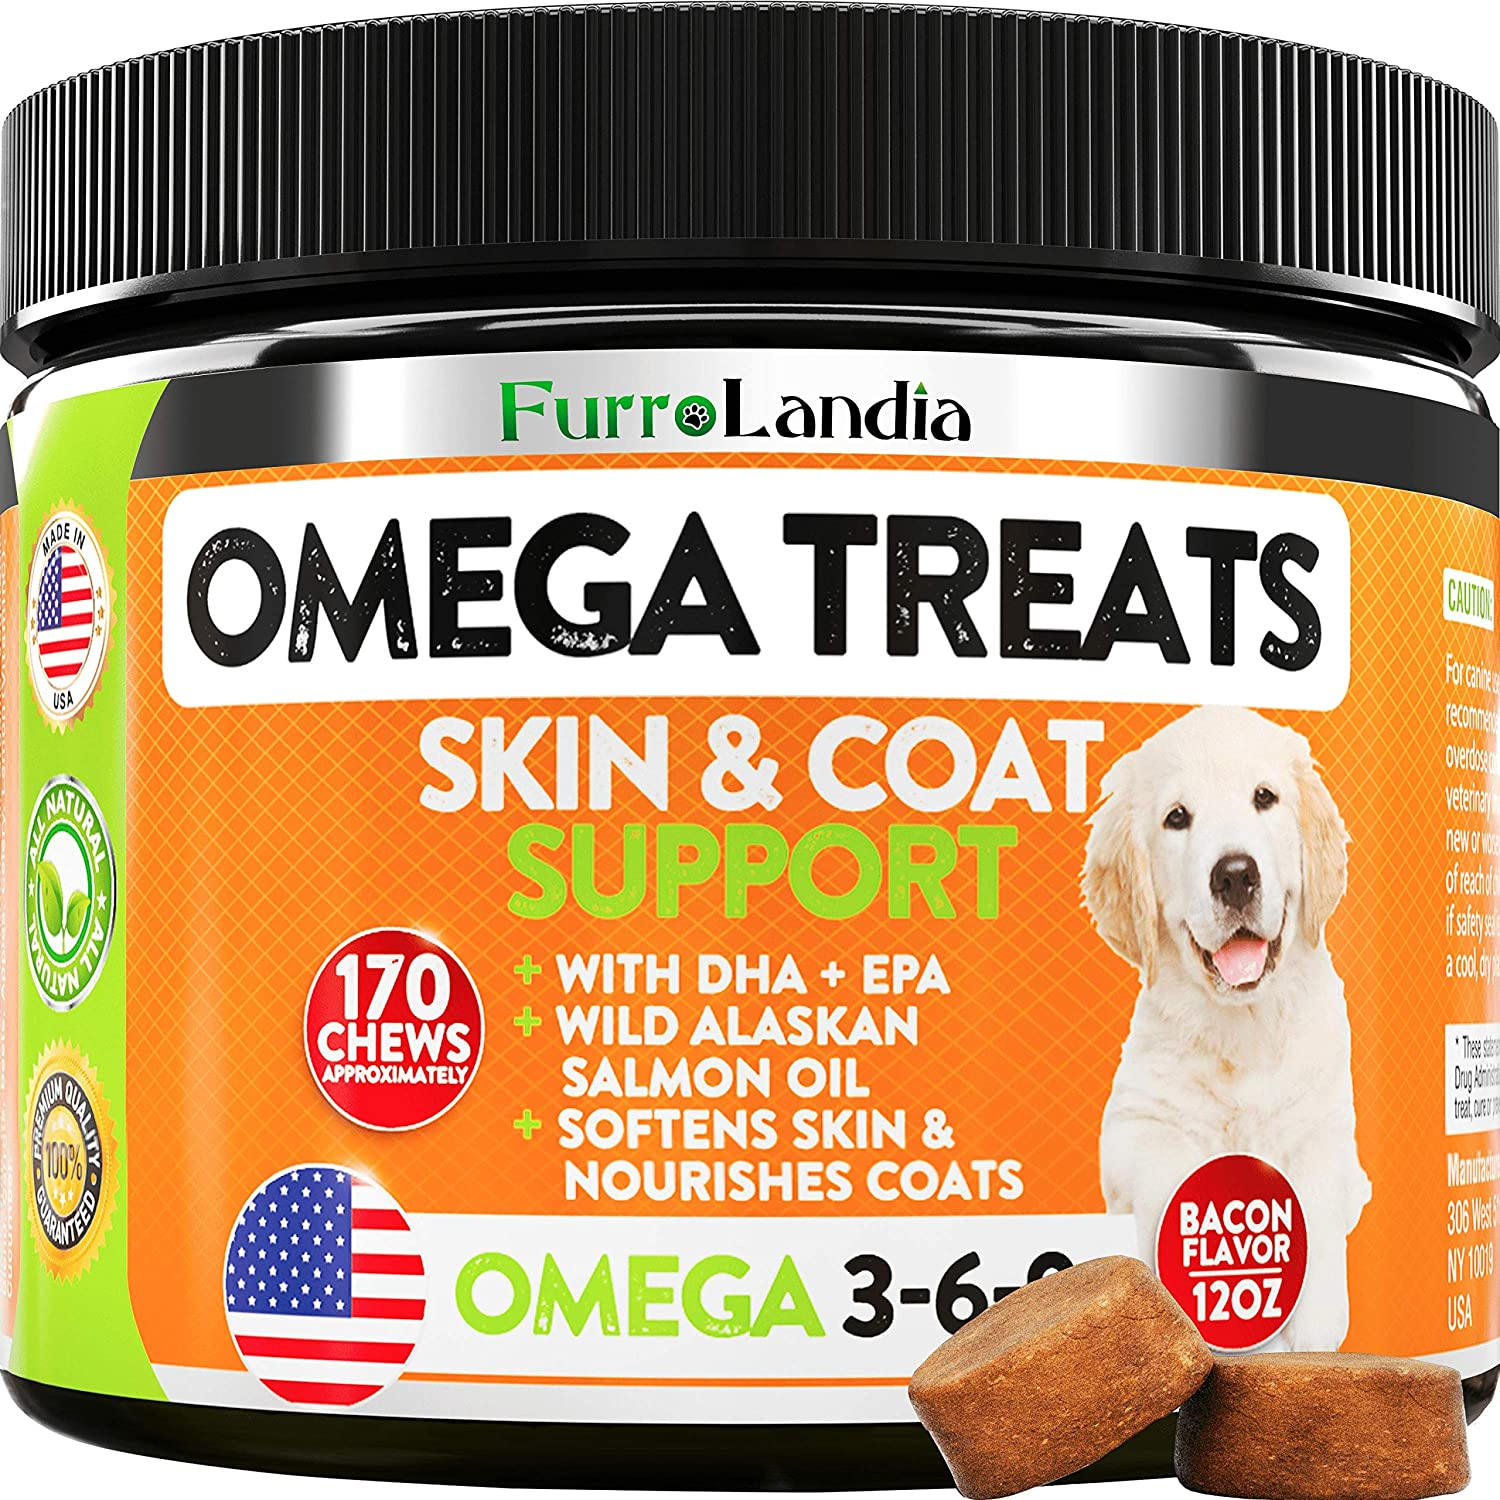 FurroLandia Omega 3 for Dogs - Allergy & Itch Relief Dog Shedding - Wild Alaskan Salmon Oil with Omega 3 6 9 for Dogs - EPA & DHA Fatty Acids